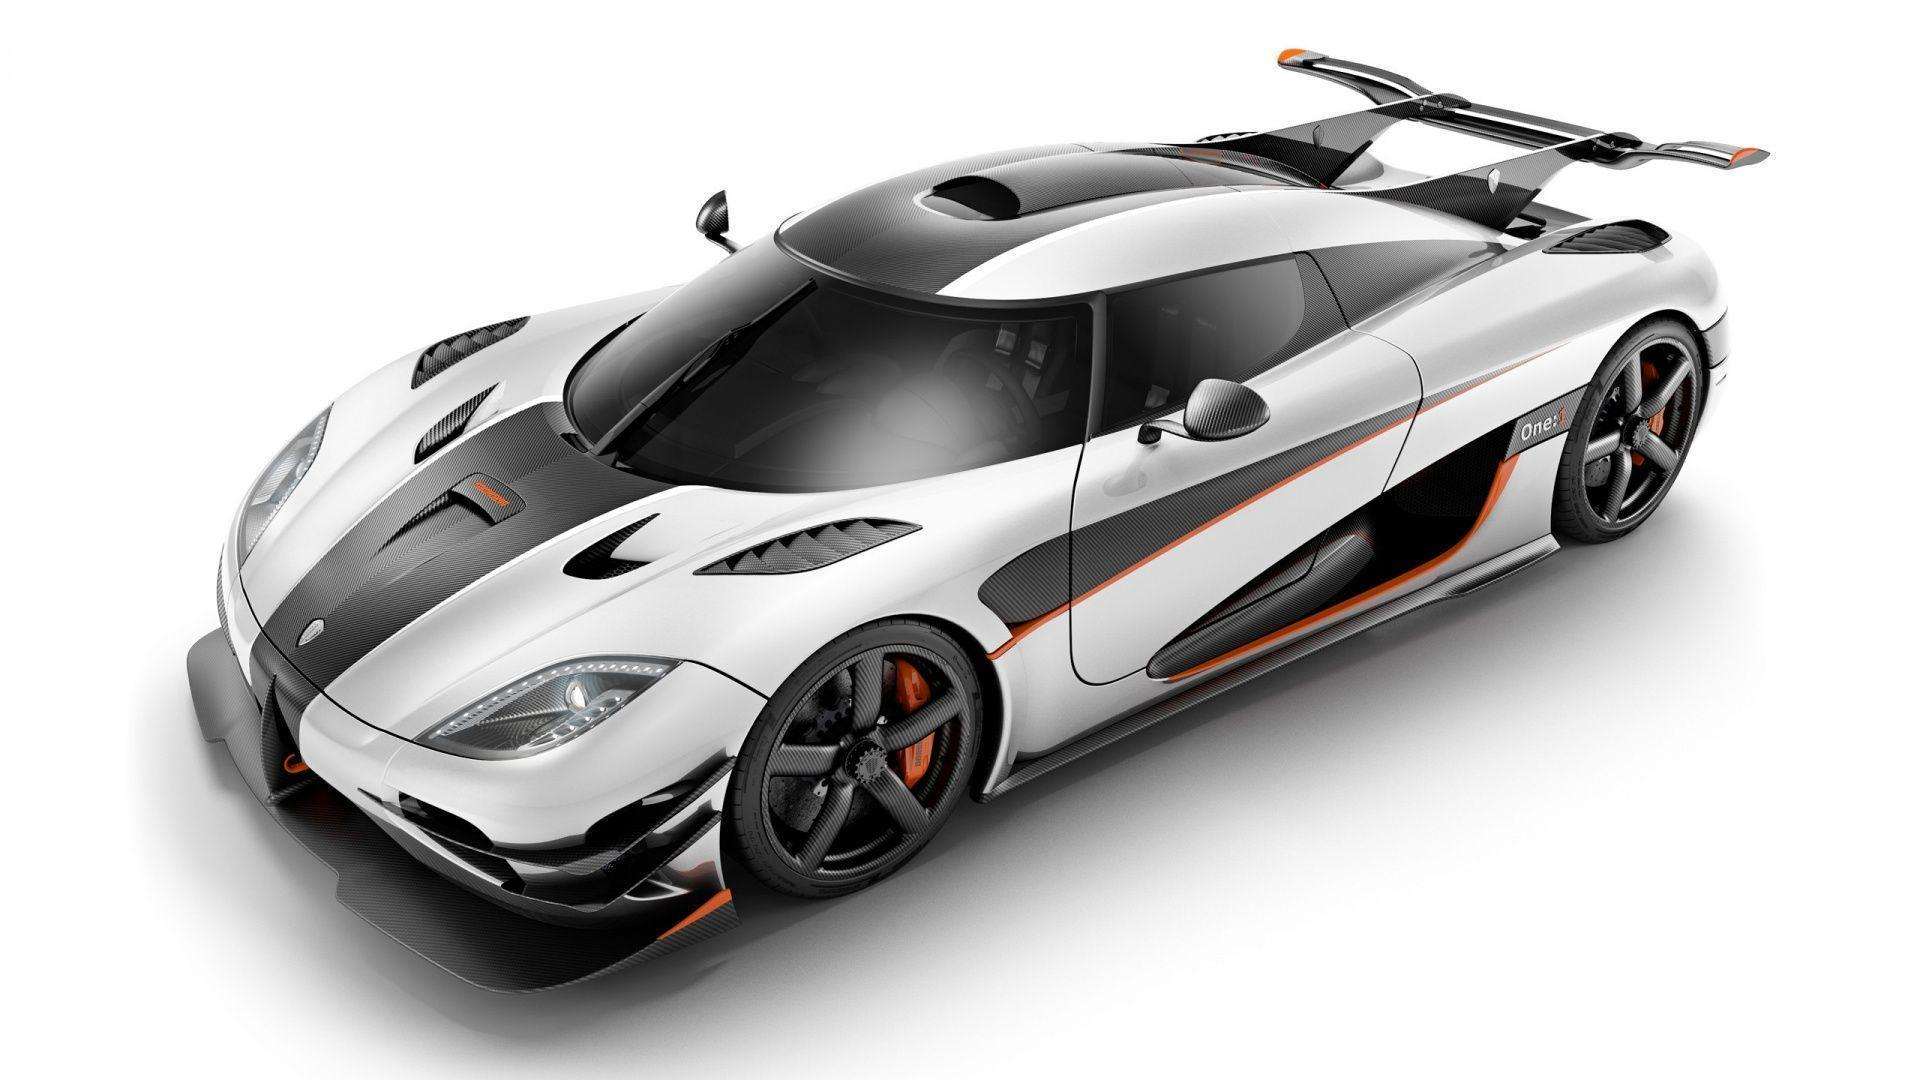 2014 Koenigsegg Agera One 1 Wallpaper | HD Car Wallpapers